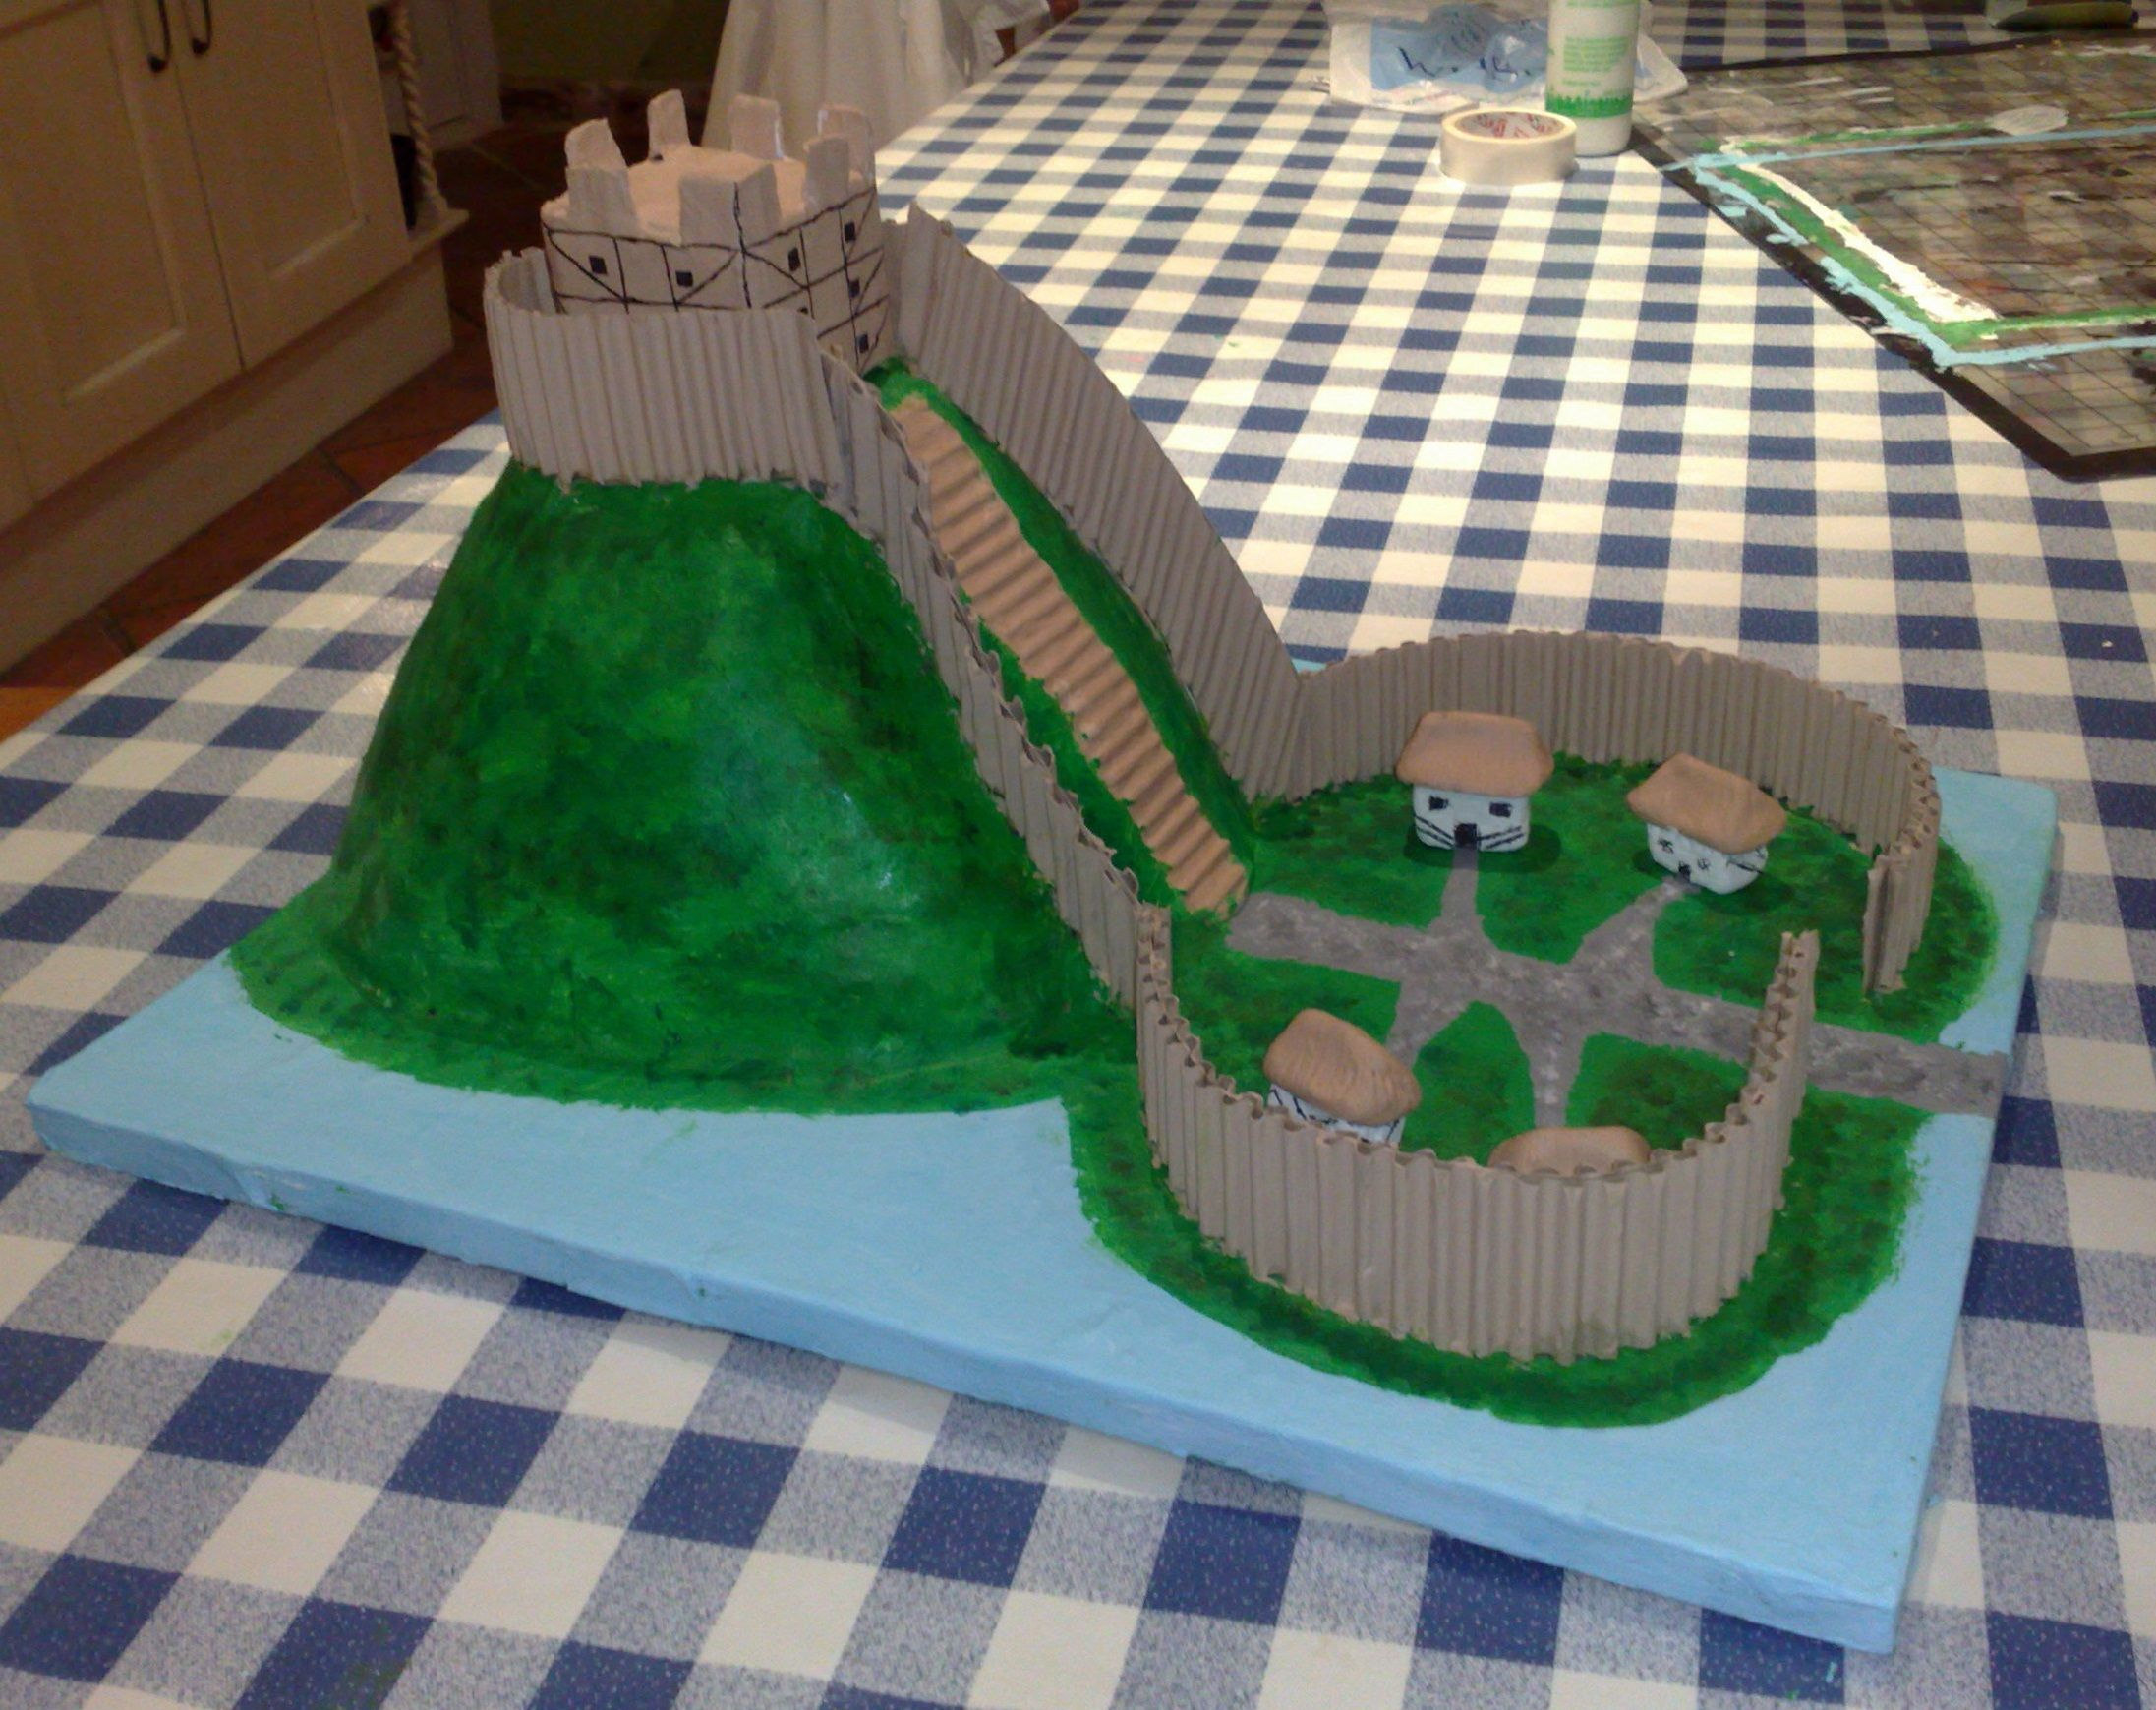 Kelsey S Motte And Bailey Model Yr 7 Castle Project Castle Crafts Motte And Bailey Castle